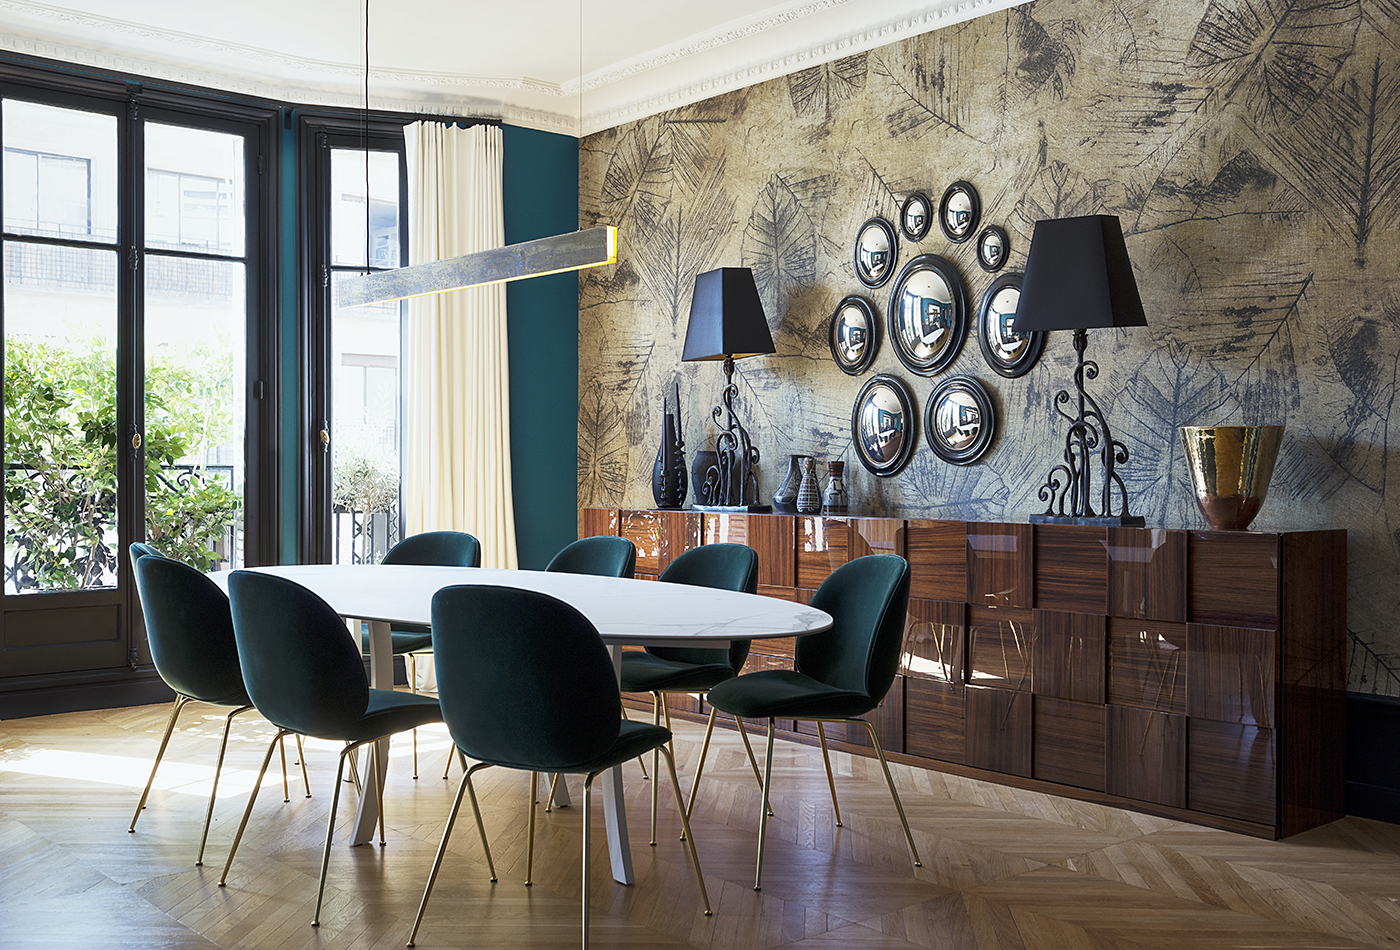 10surdix architecte d 39 int rieur paris showroom de mobilier architecture int rieure paris. Black Bedroom Furniture Sets. Home Design Ideas